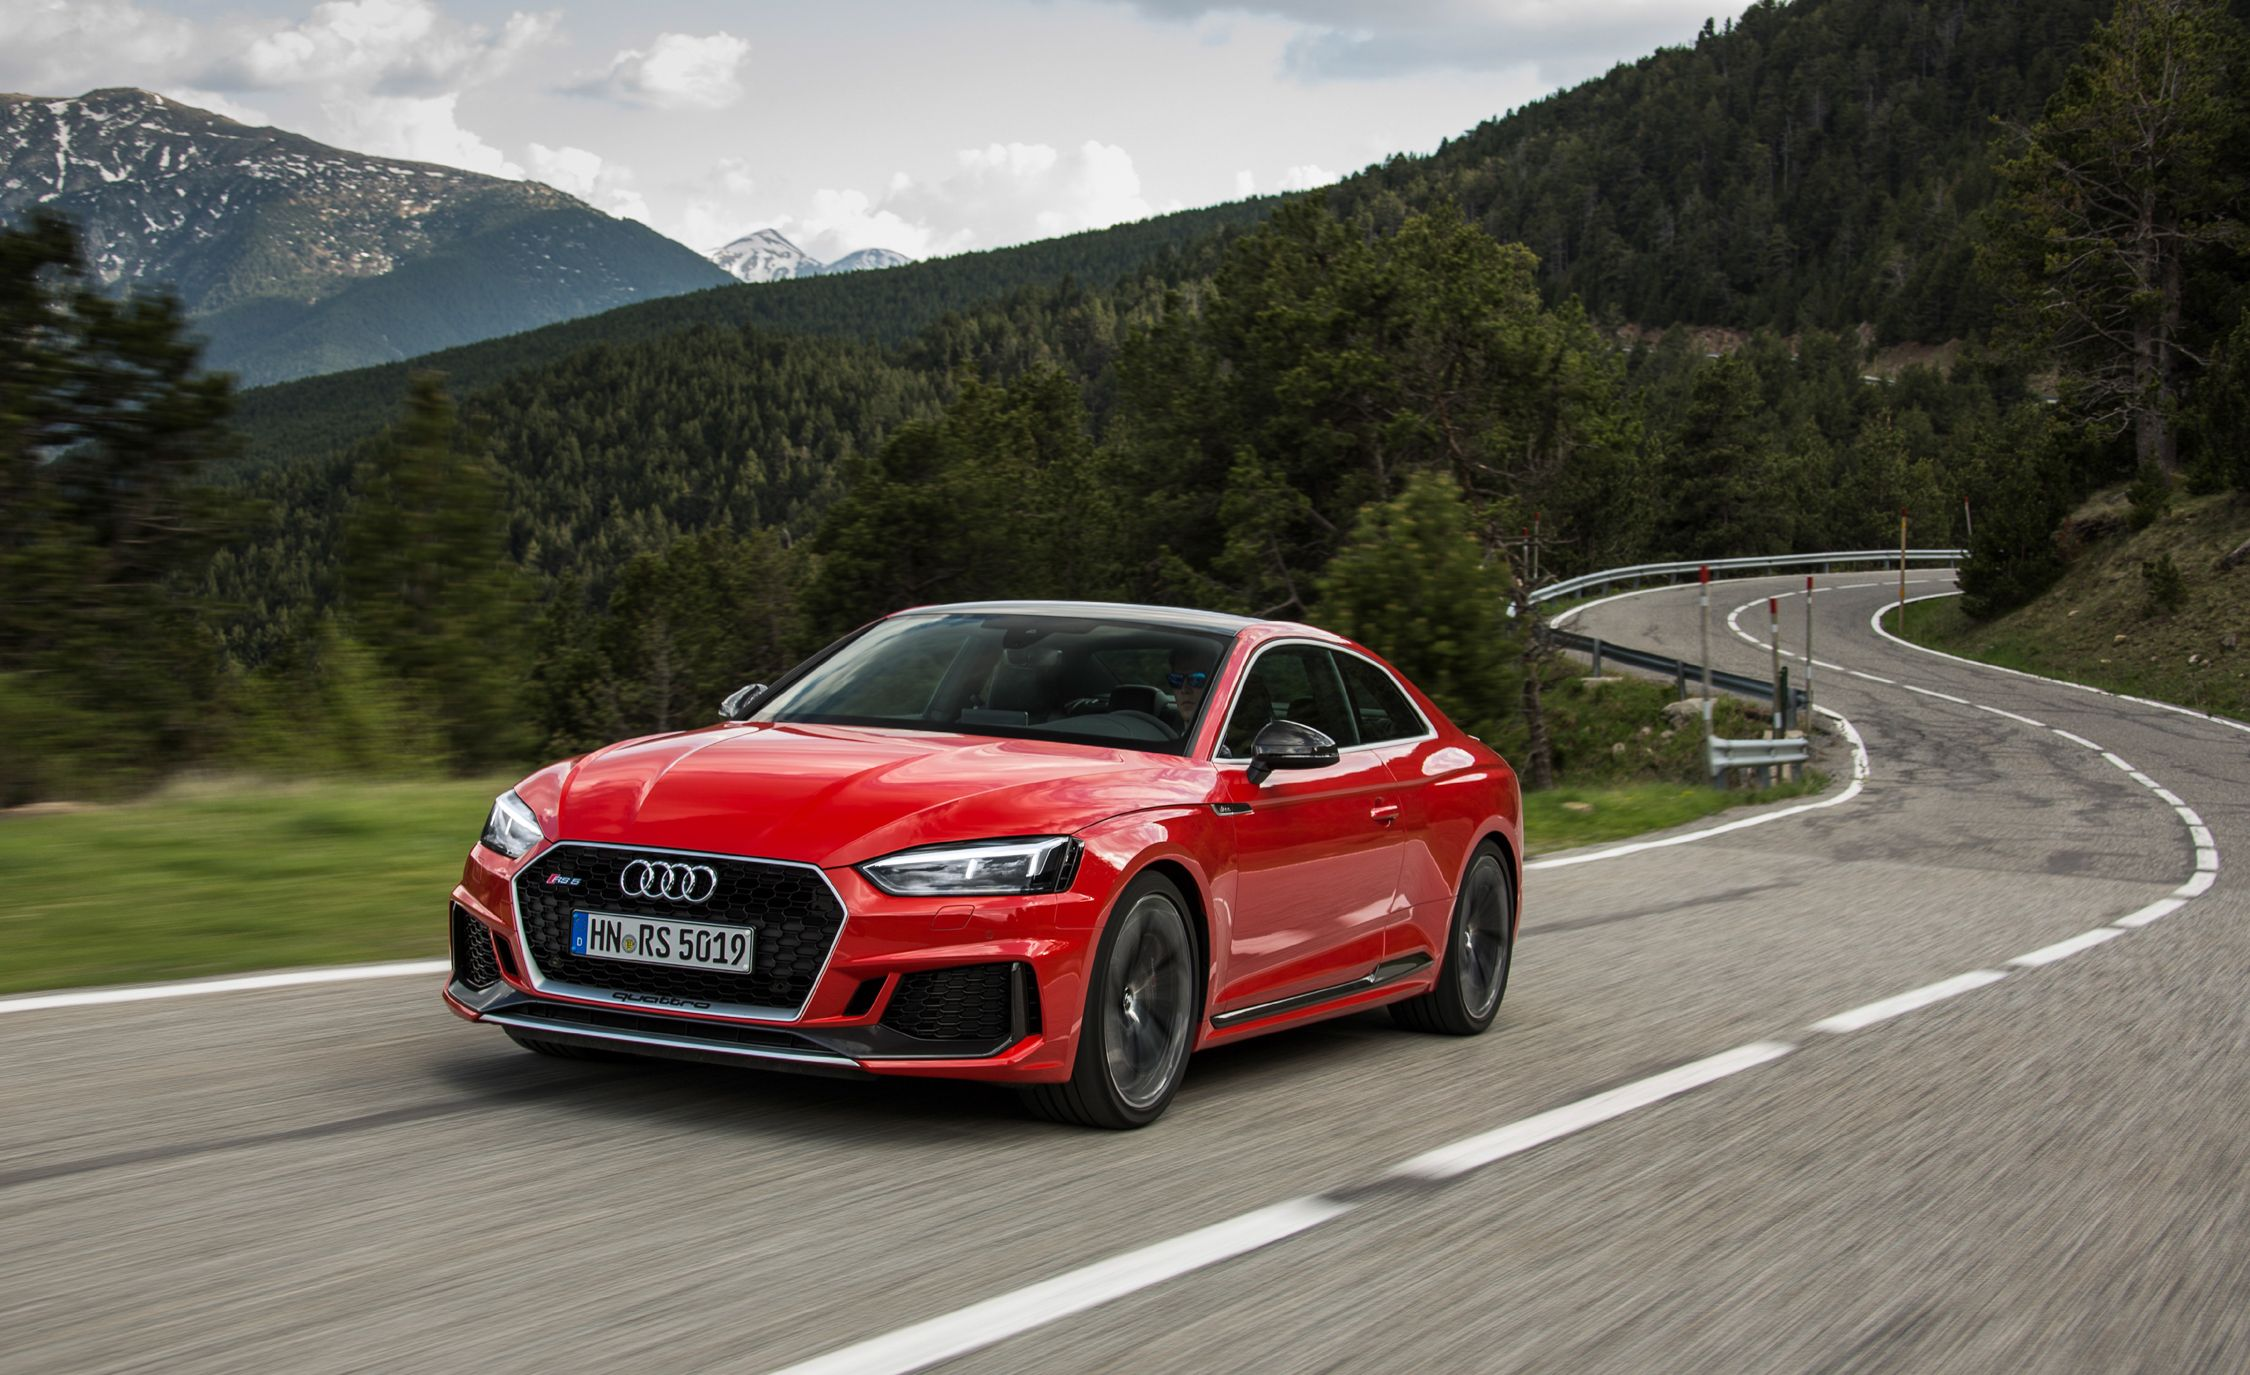 Audi RS5 Reviews | Audi RS5 Price, Photos, and Specs | Car and Driver